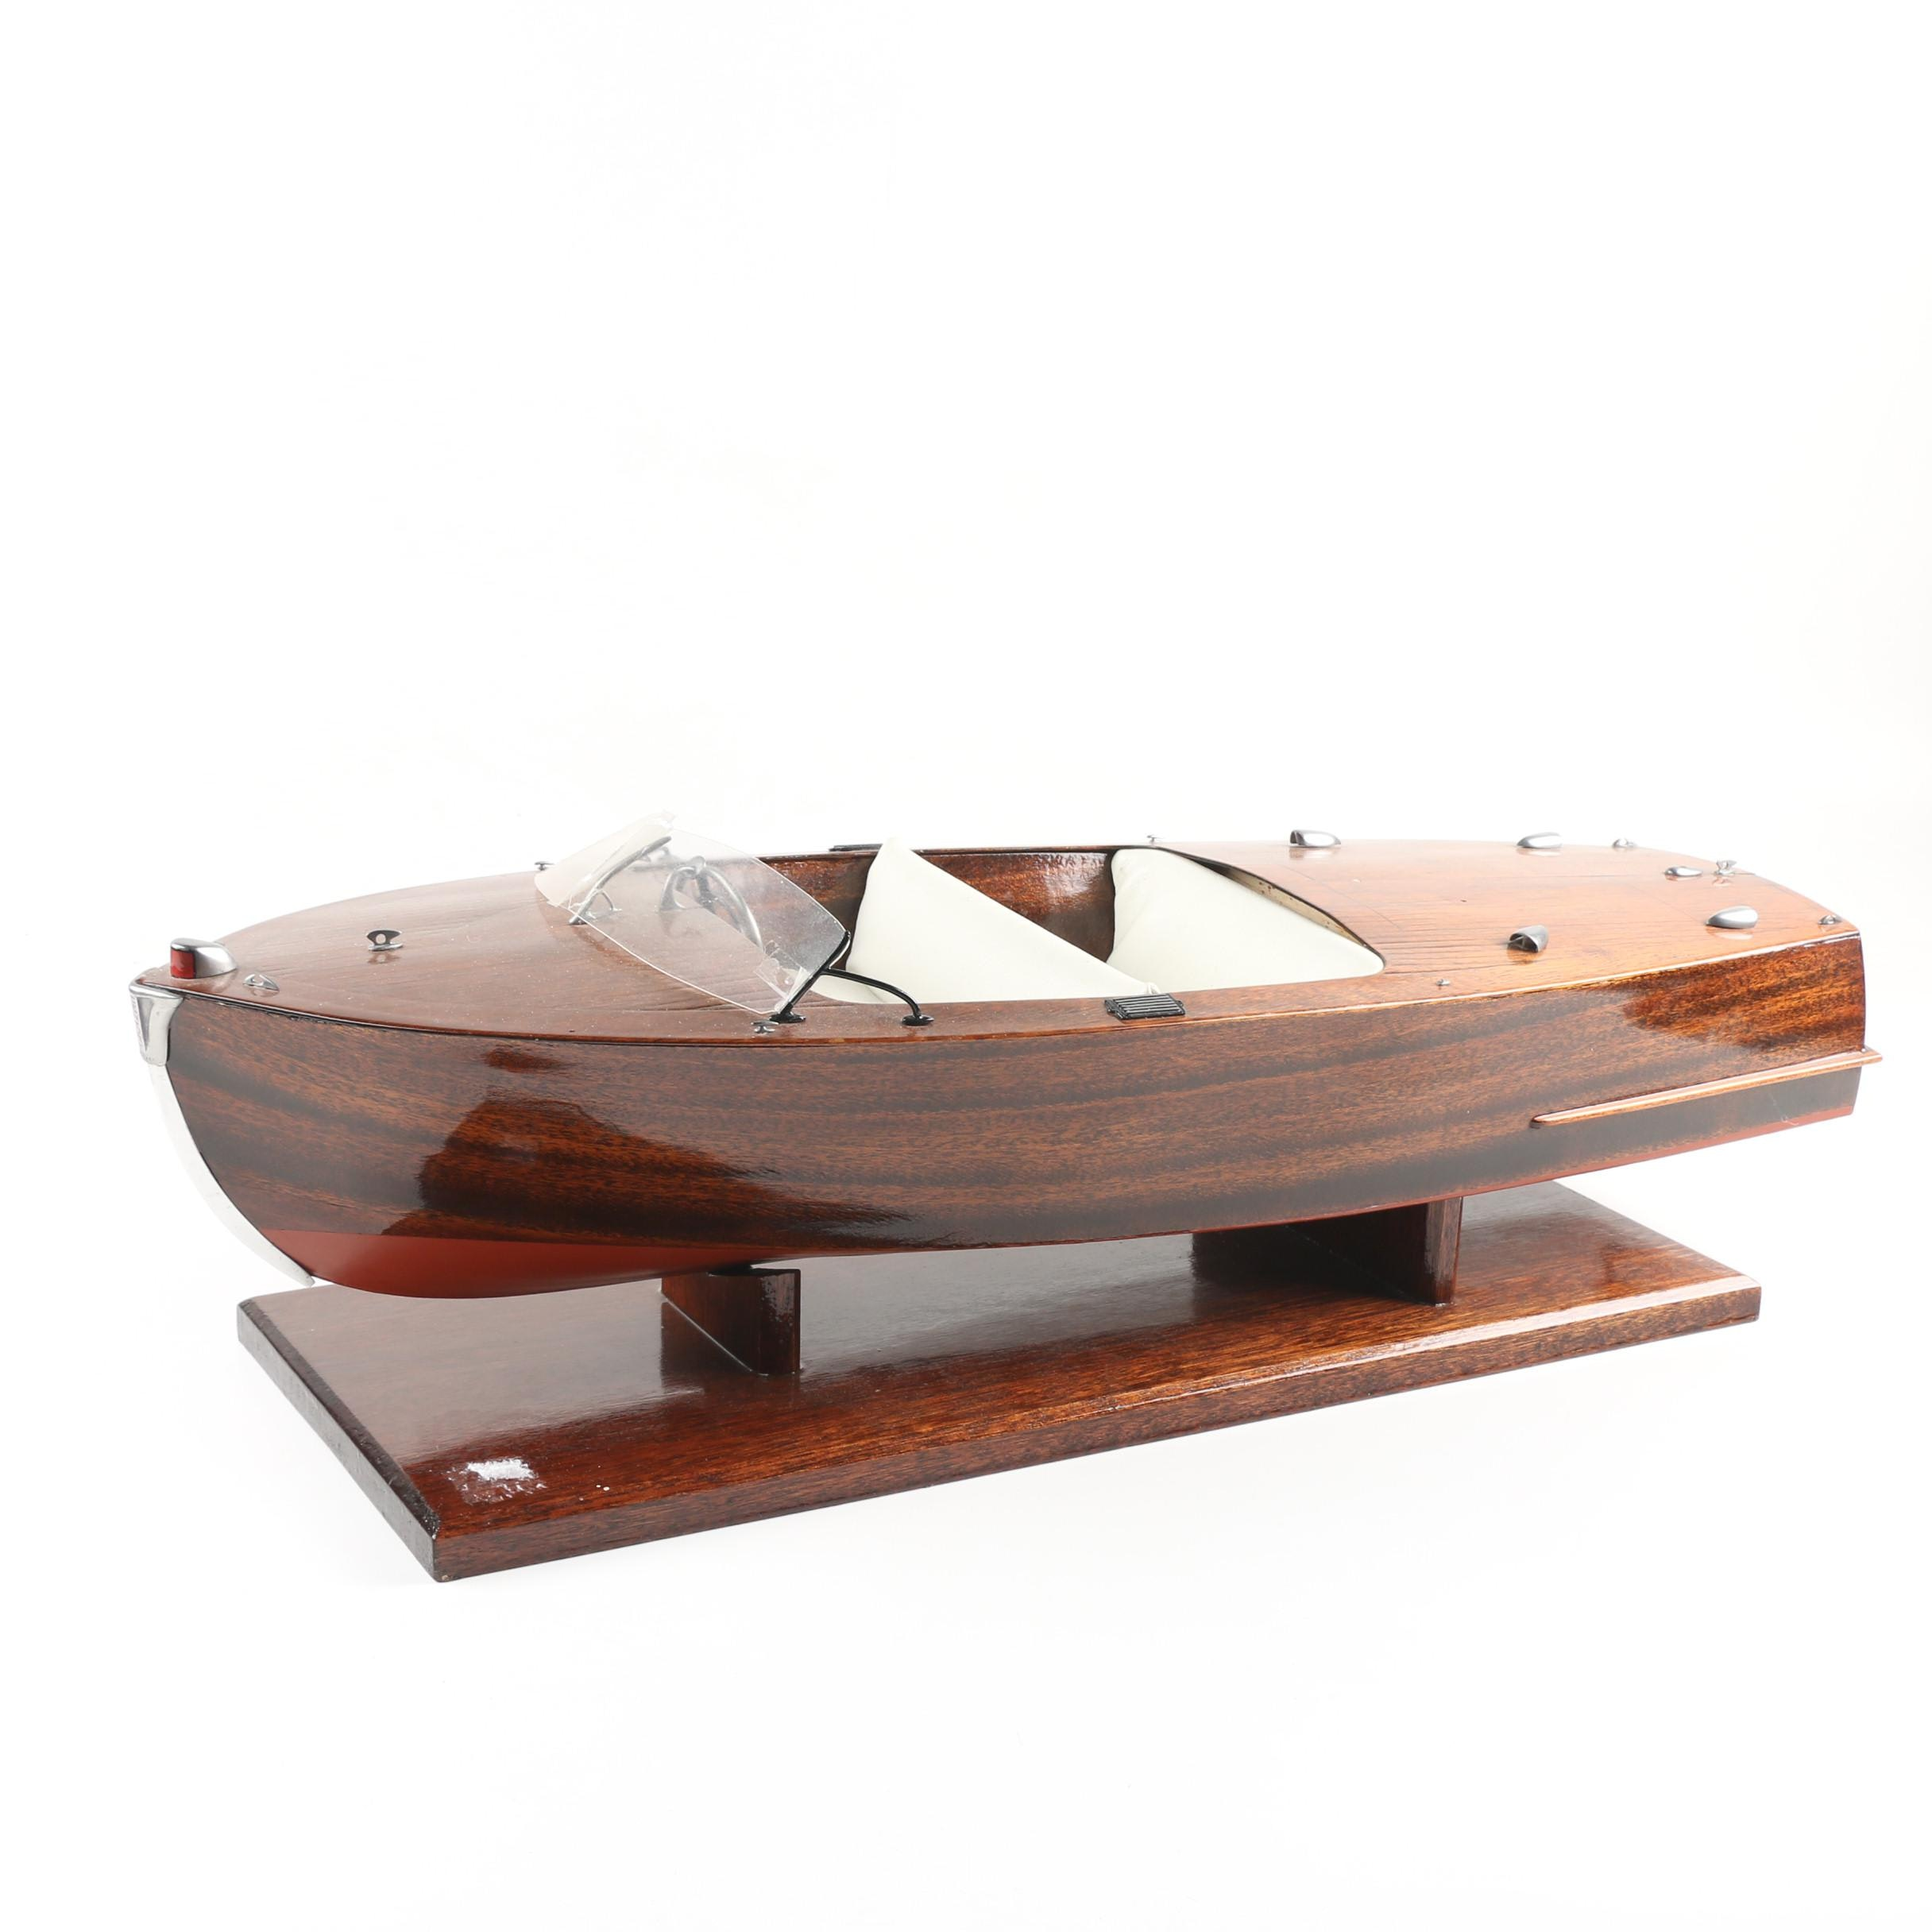 Decorative Mahogany Model of Finnish Runabout Speedboat with Stand, 20th Century